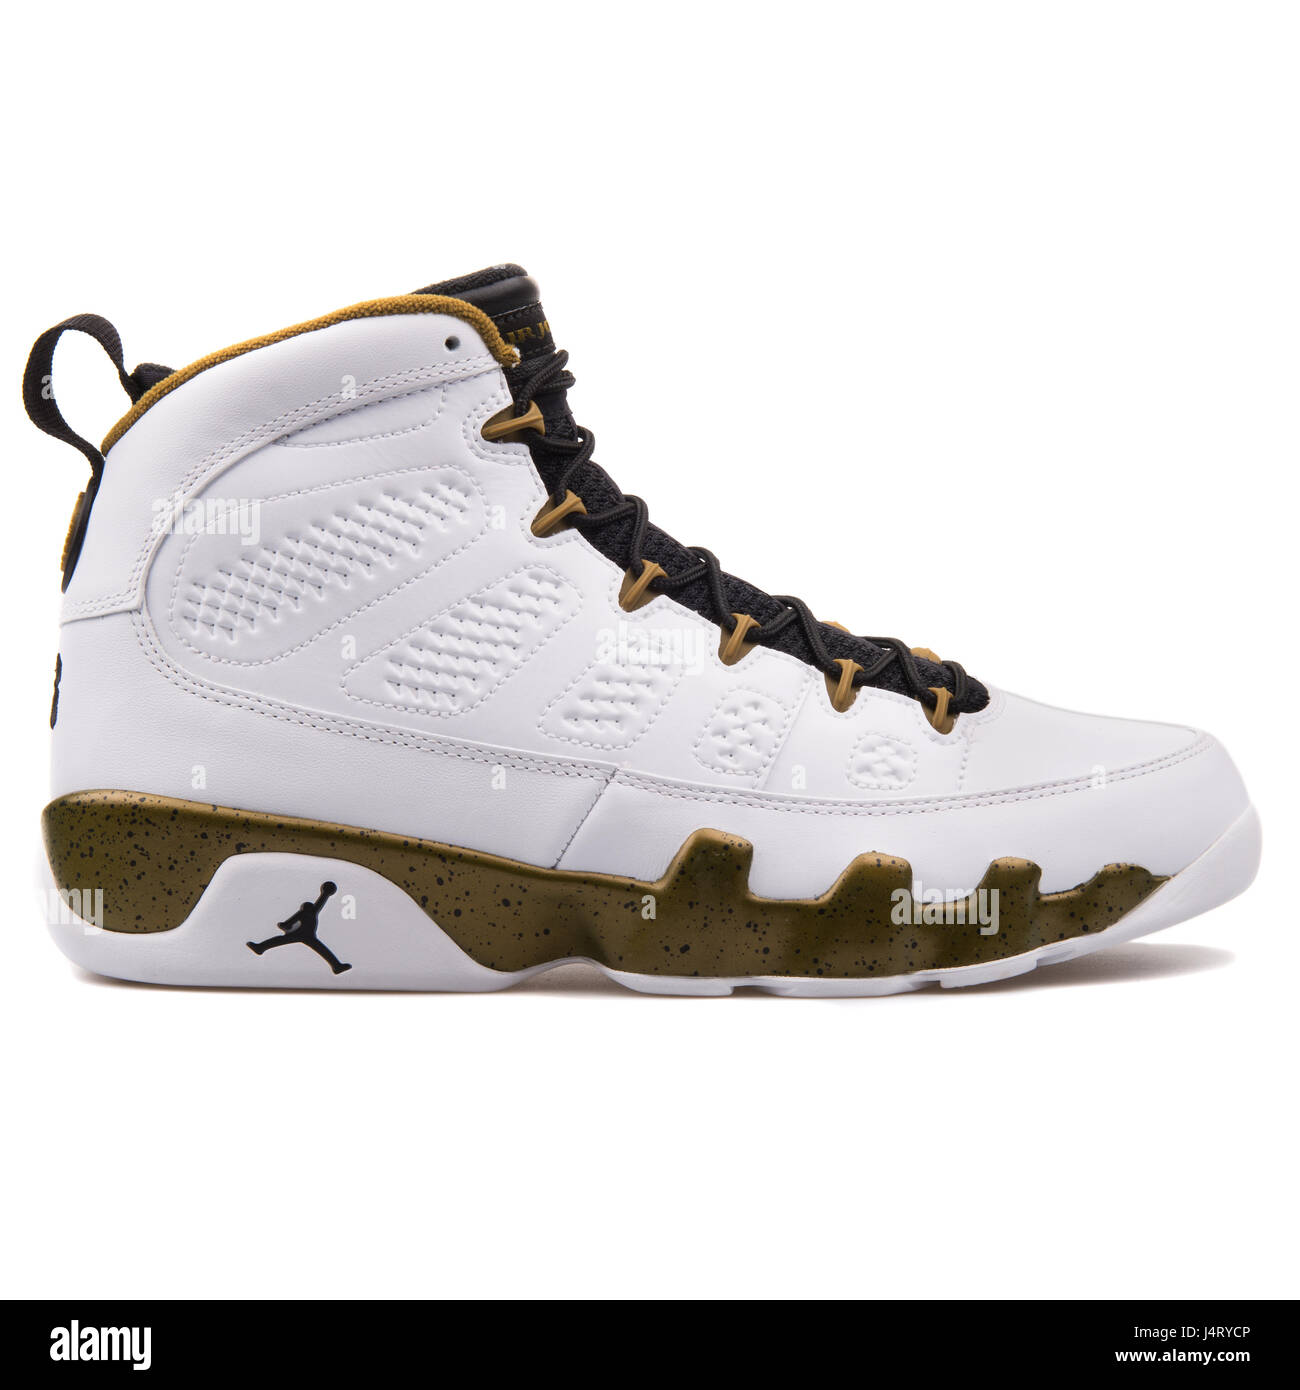 8bf974f90490 Nike Air Jordan 9 Retro White Black Militia Green High Leather Sneakers -  302370-109